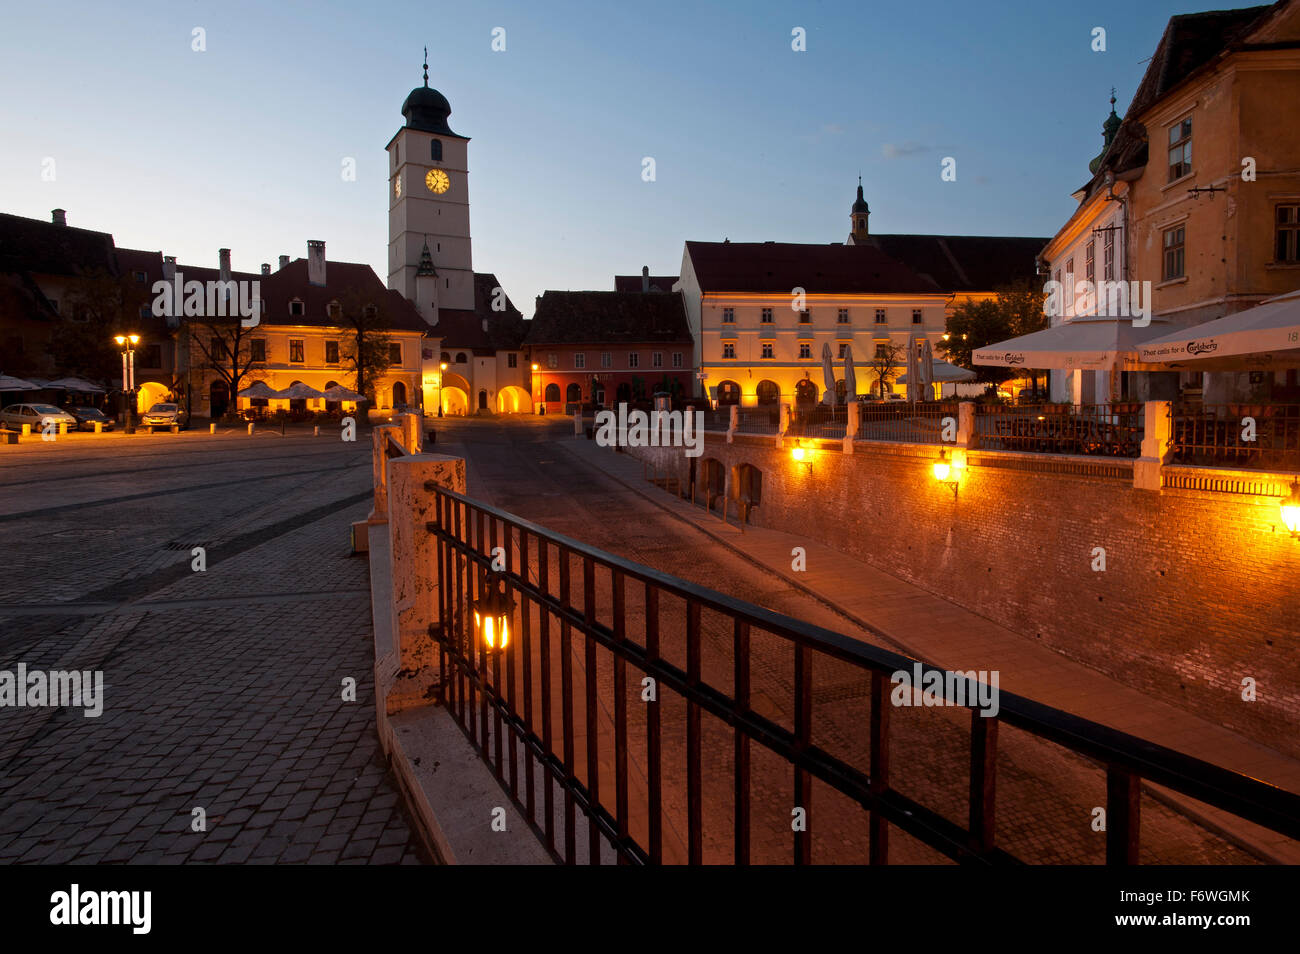 Piata Huet in the historic part of town, Sibiu, Transylvania, Romania - Stock Image